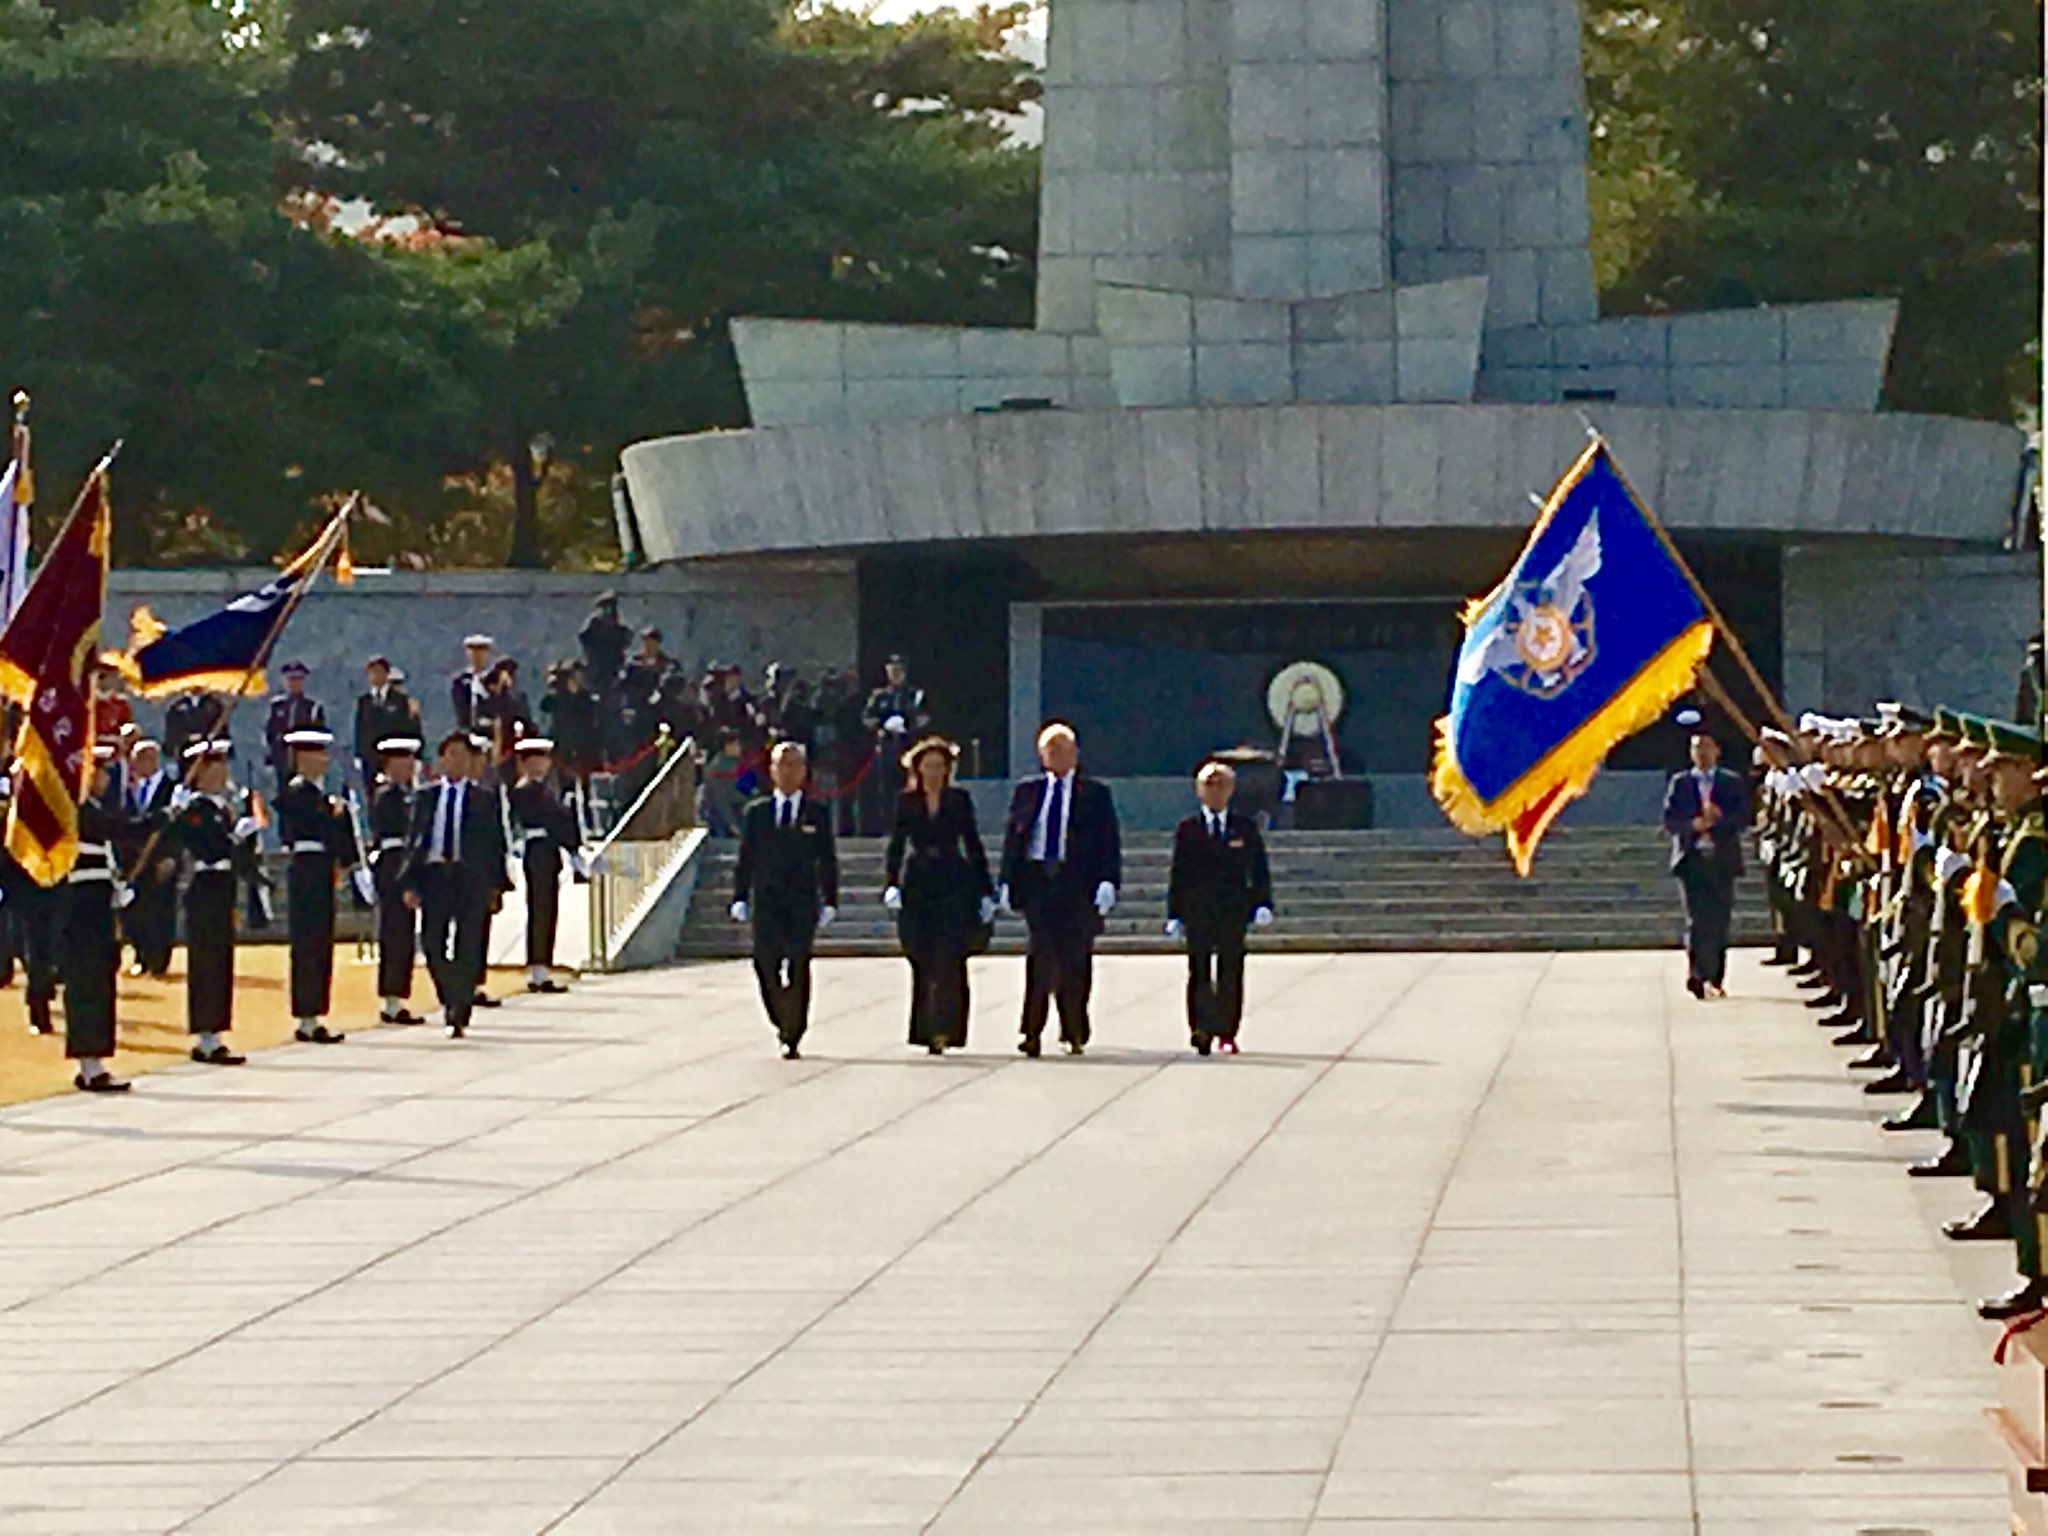 .@POTUS and @FLOTUS lay a wreath at Seoul National Cemetery honoring the lives lost defending freedom. #POTUSinAsia https://t.co/wrwgw9bnzN